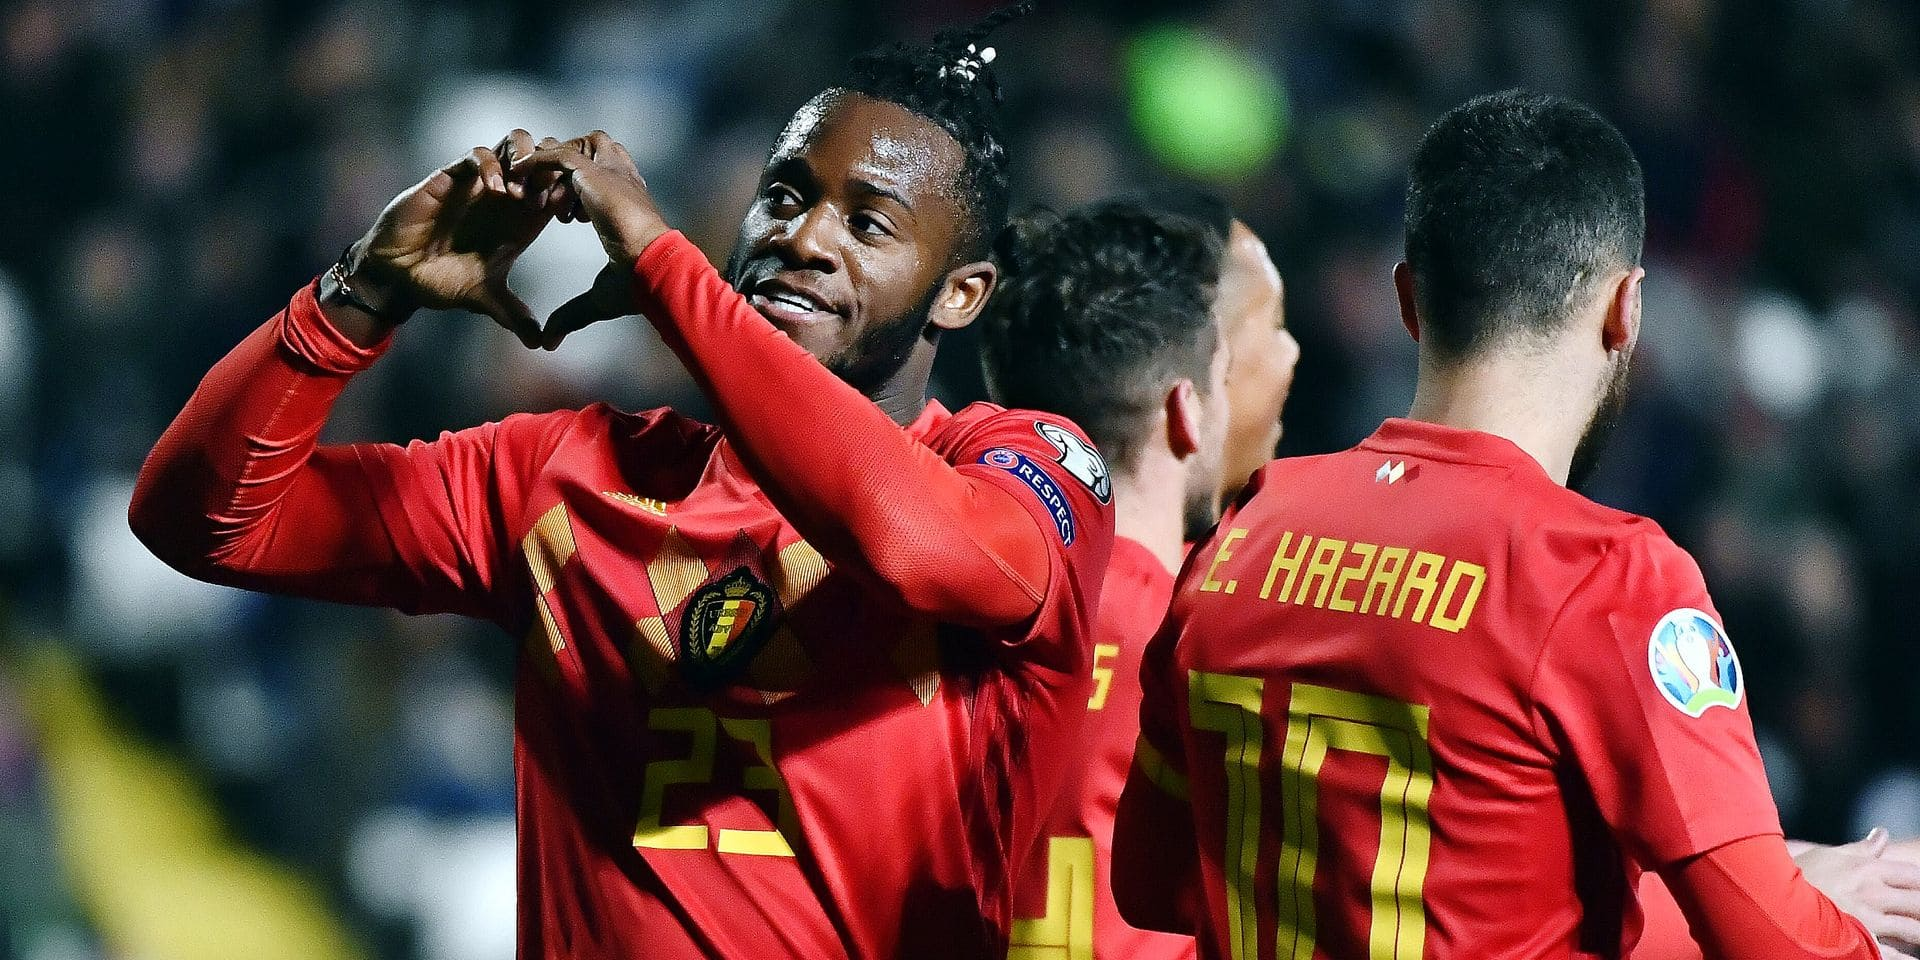 Belgium's Michy Batshuayi celebrates after scoring during a qualification game for the European Championships 2020 between Cyprus and Belgian national soccer team the Red Devils, in the group I, Sunday 24 March 2019 in Nicosia, the Republic of Cyprus. BELGA PHOTO DIRK WAEM